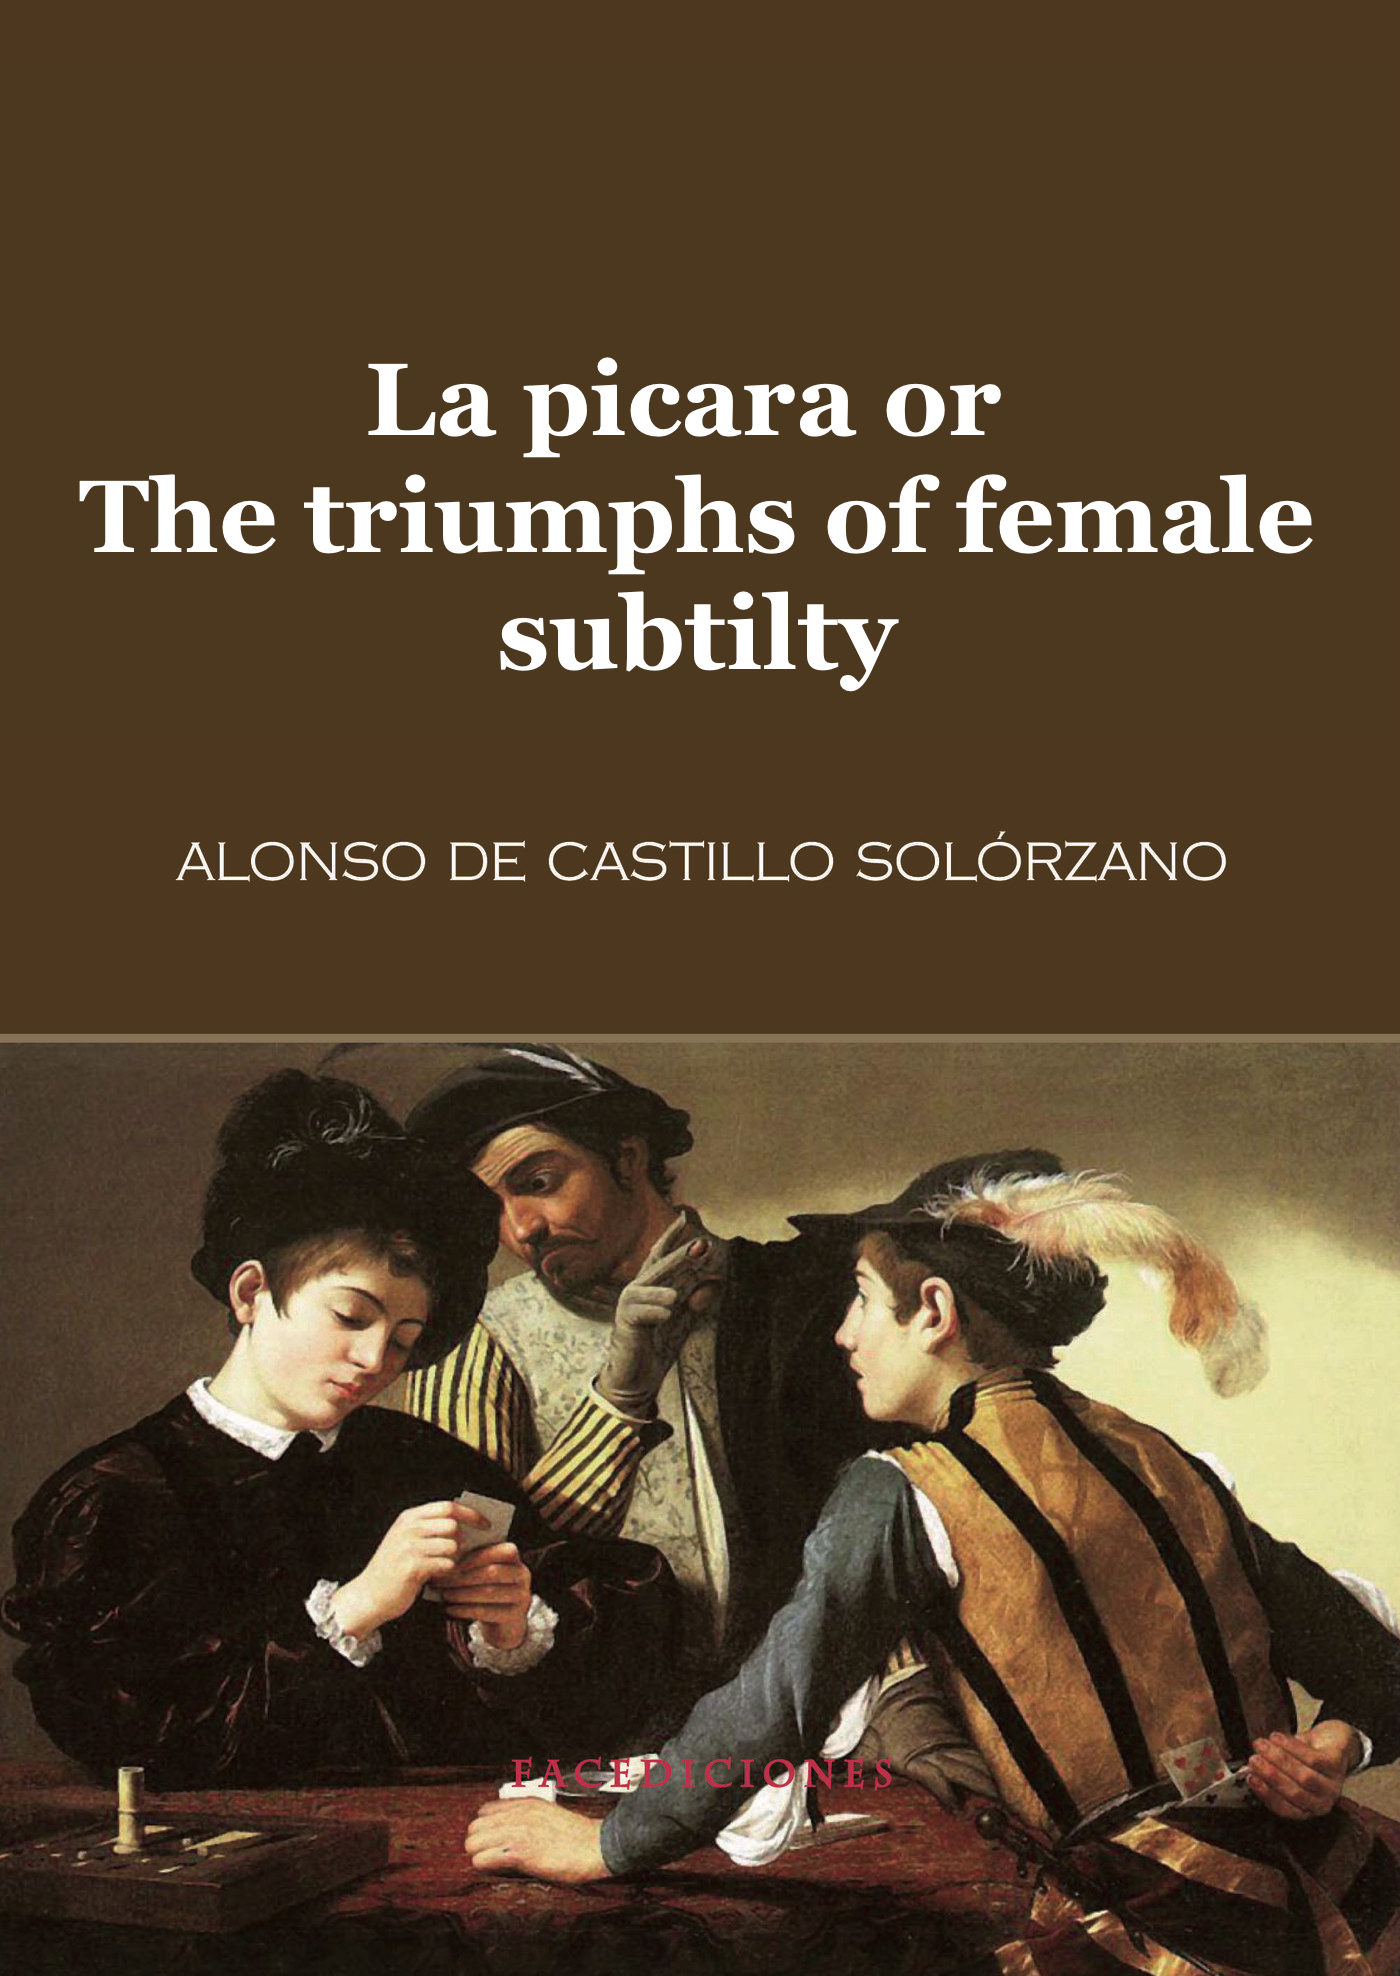 Book Cover: La picara or The triumphs of female subtilty